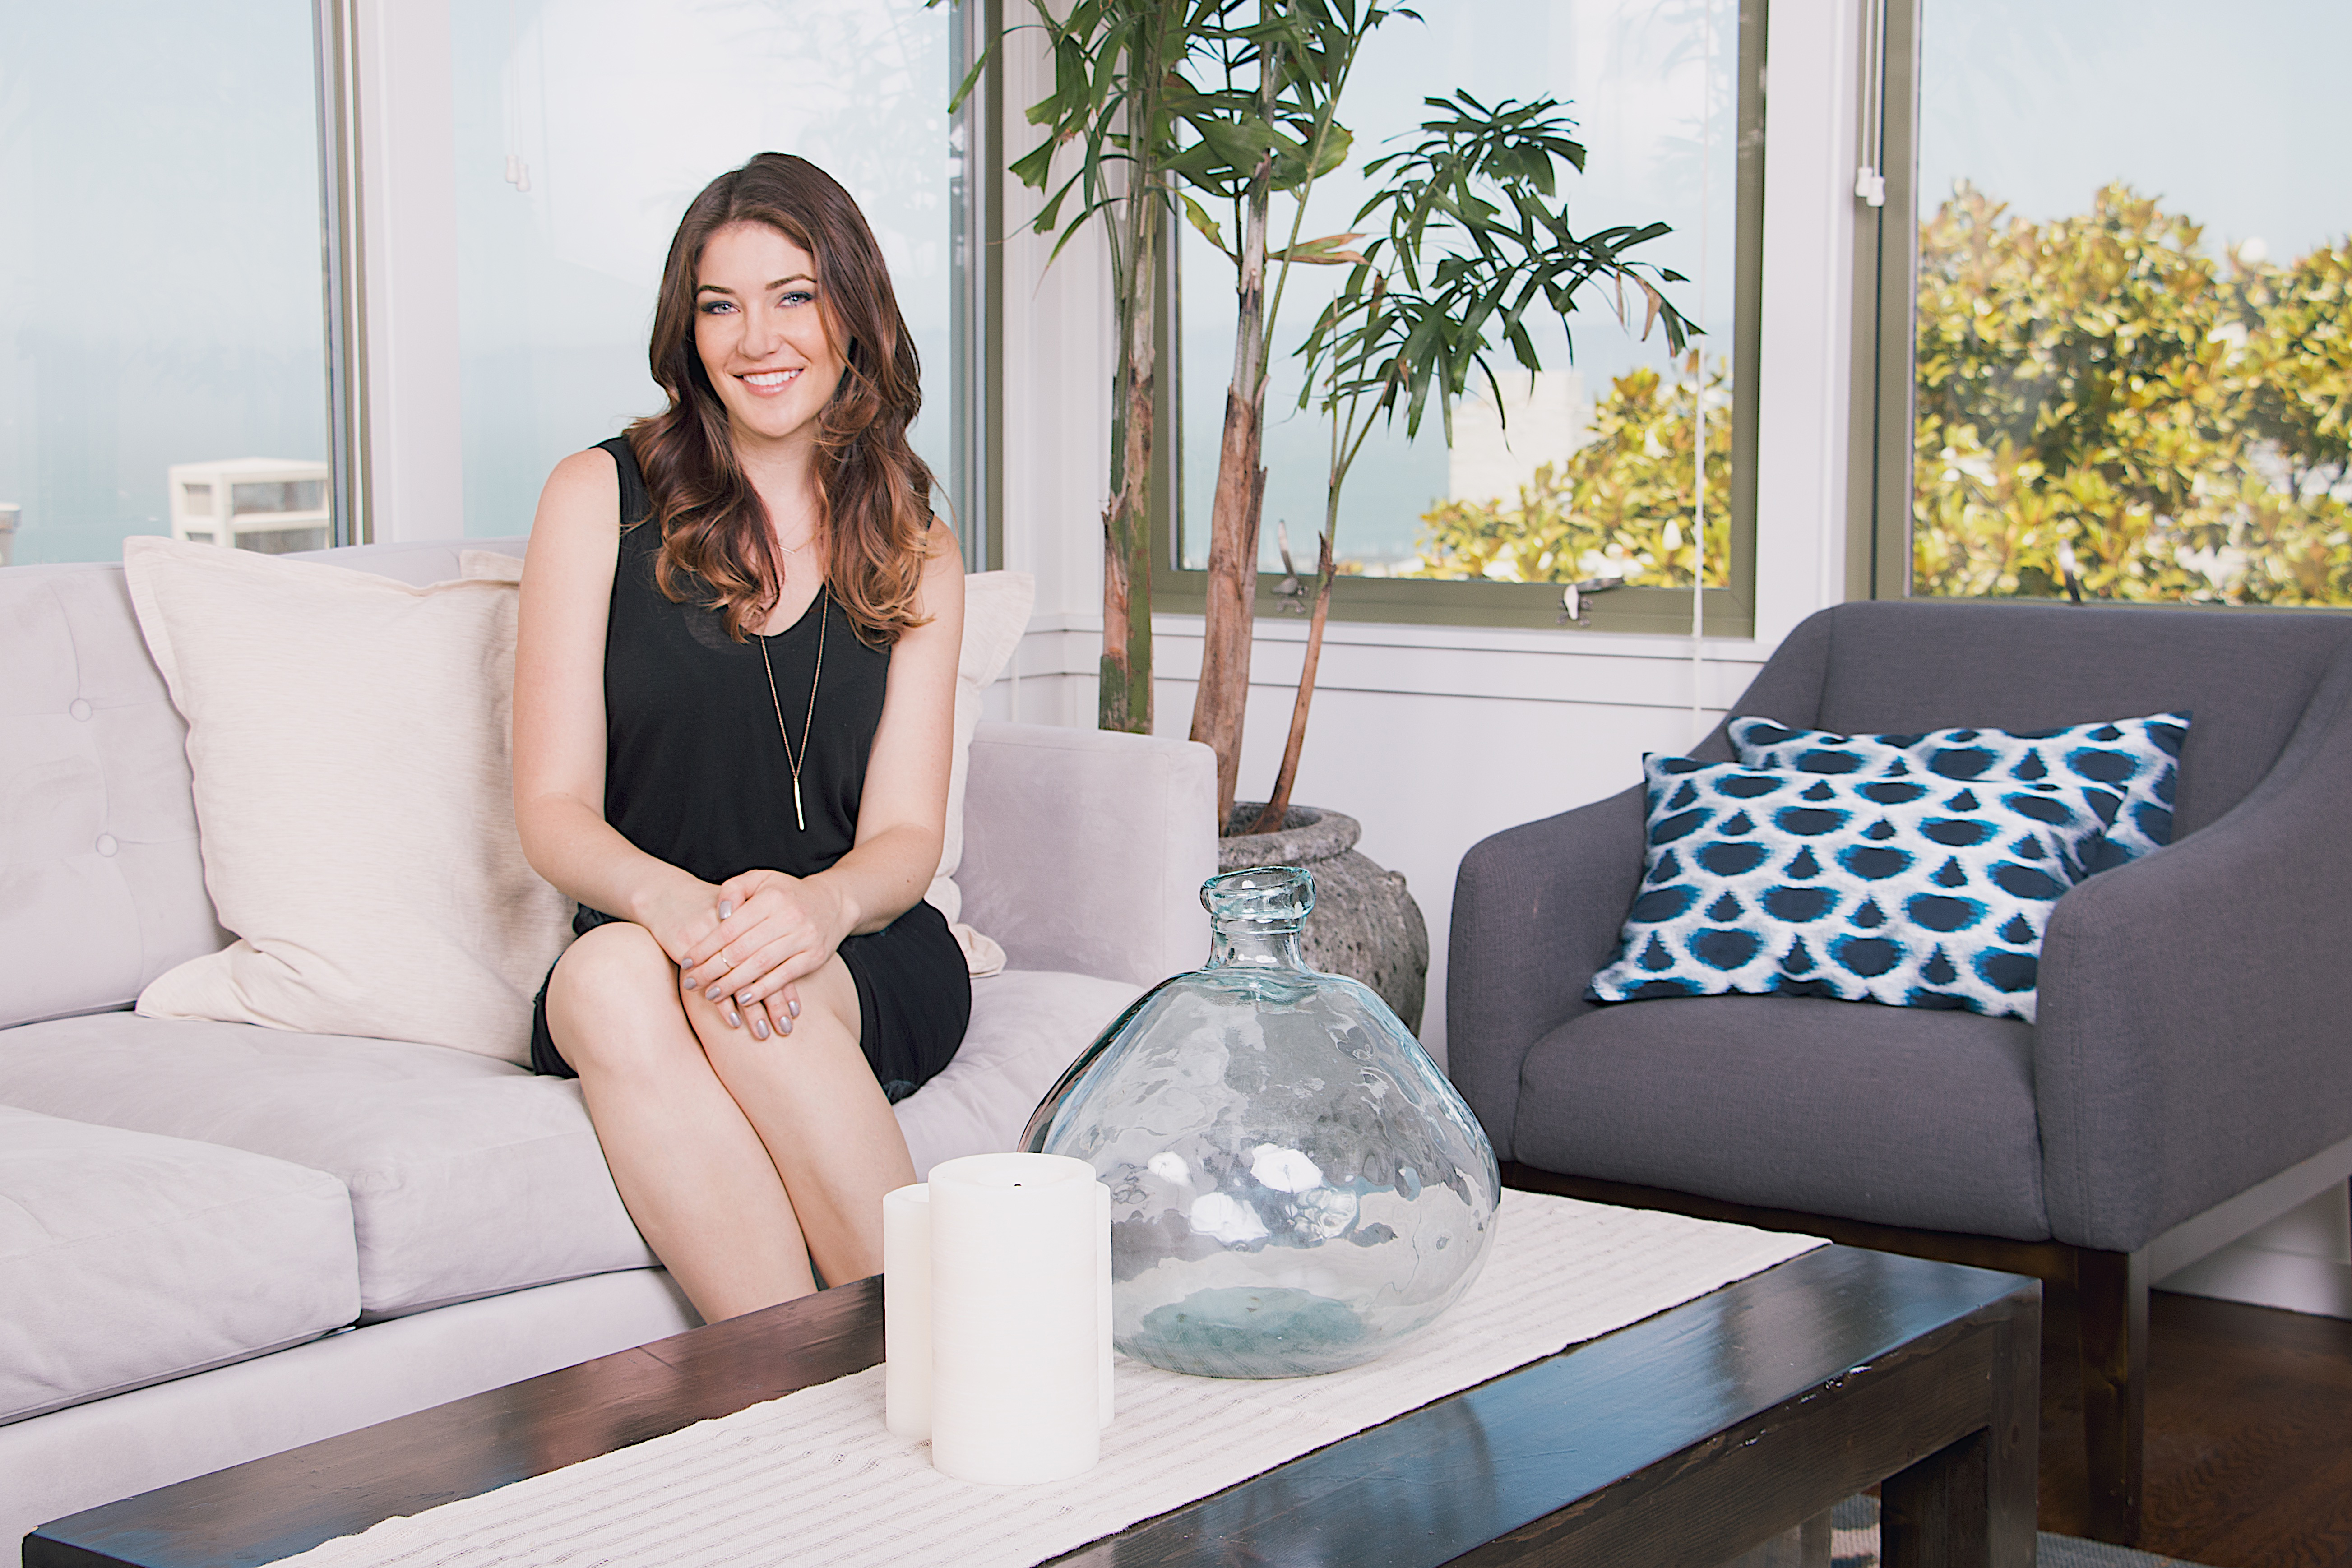 Melody McCloskey, co-founder and CEO of StyleSeat